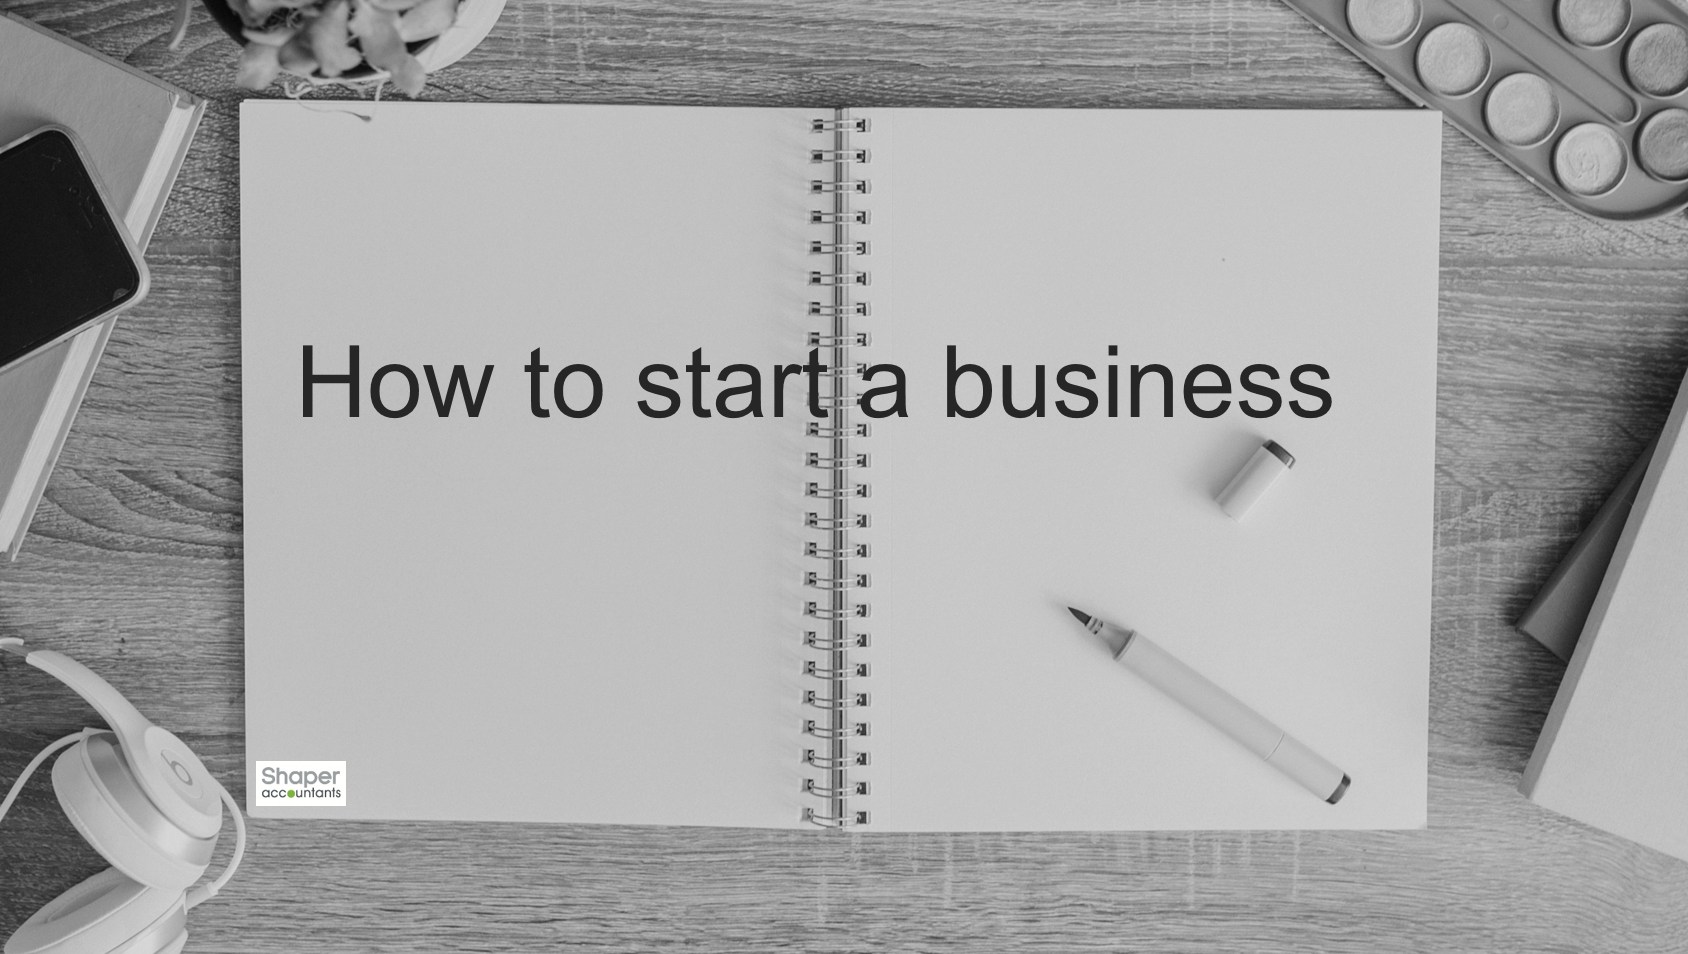 how to start a business - Shaper Accountants